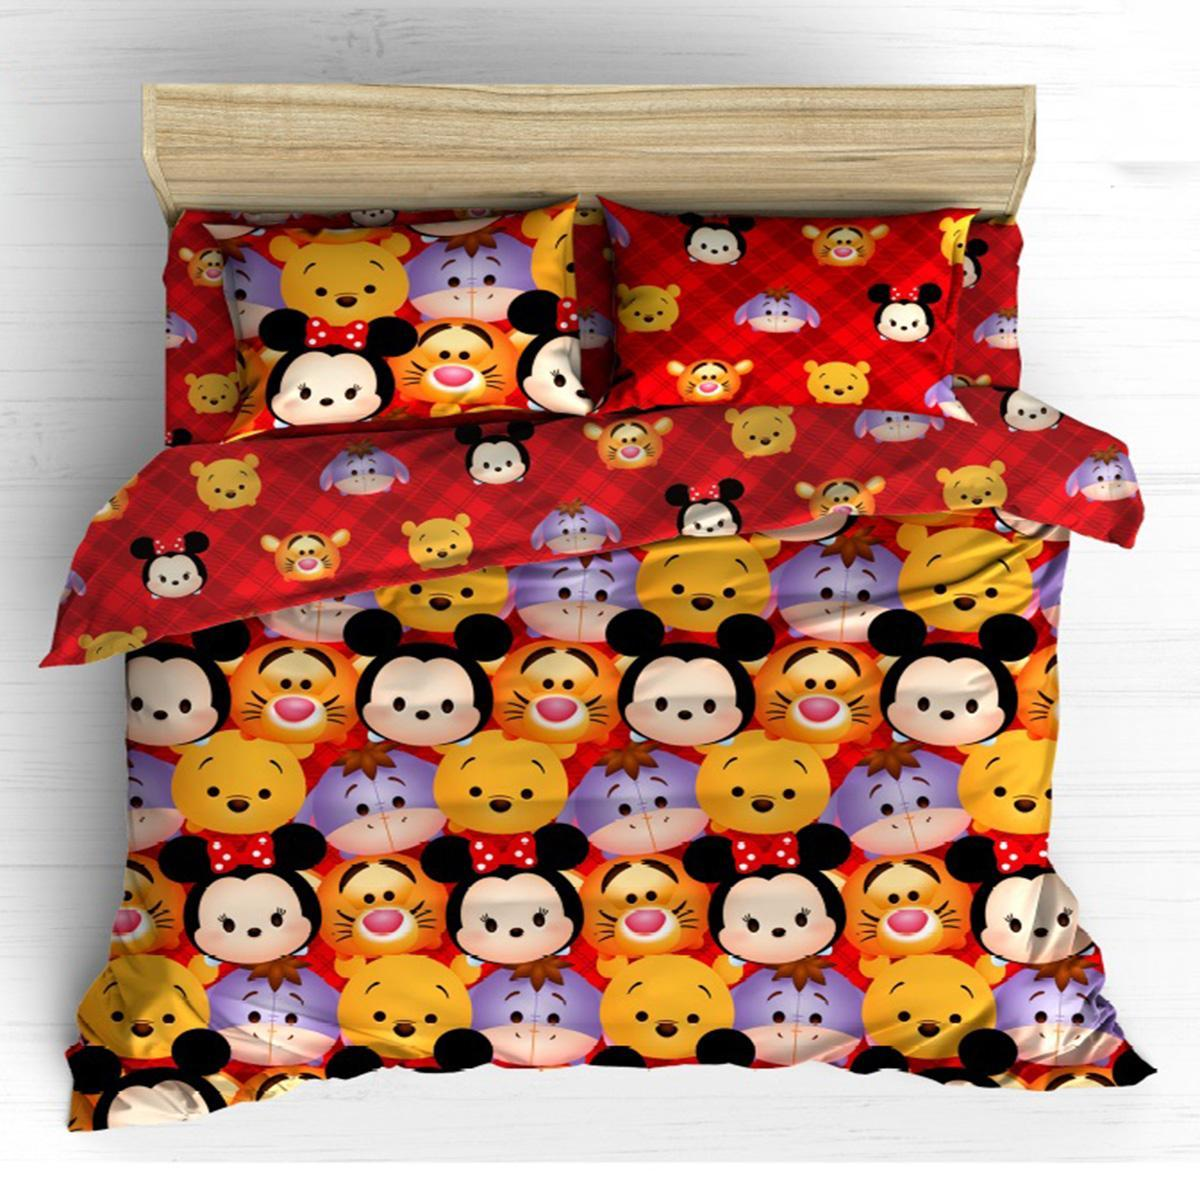 Isthana Collection Sprei Kendra Disney Kids Special Edition 160x200 Tsum-Tsum 01 (Buat Kasur